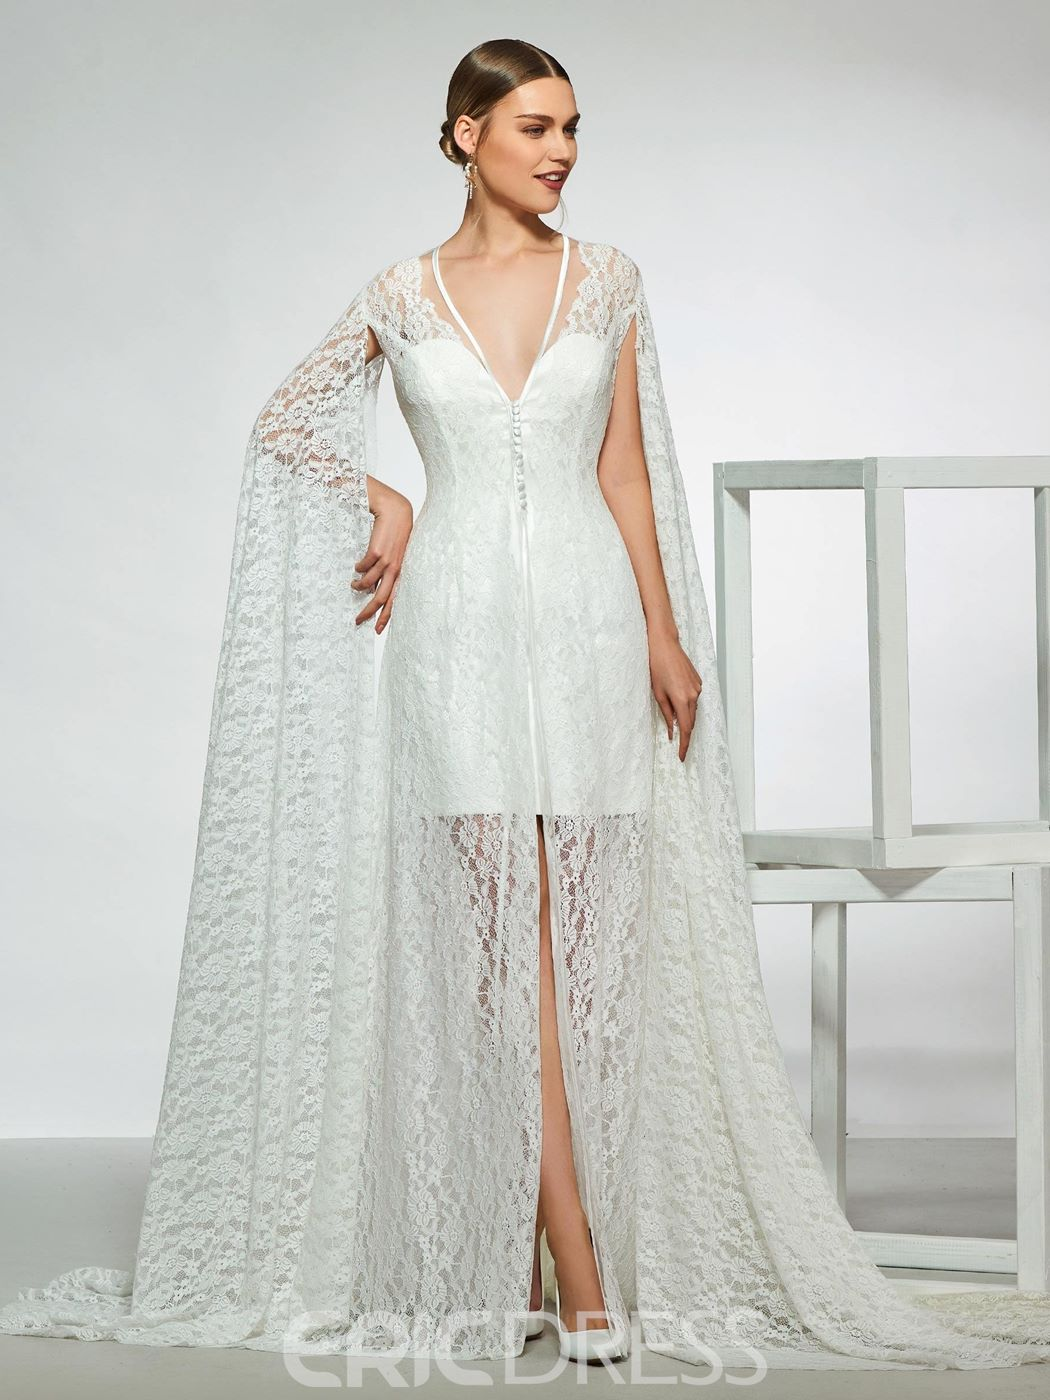 5760b2a7 Ericdress V-Neck Button Long Sleeves Sheath Wedding Dress 2019(13773487)